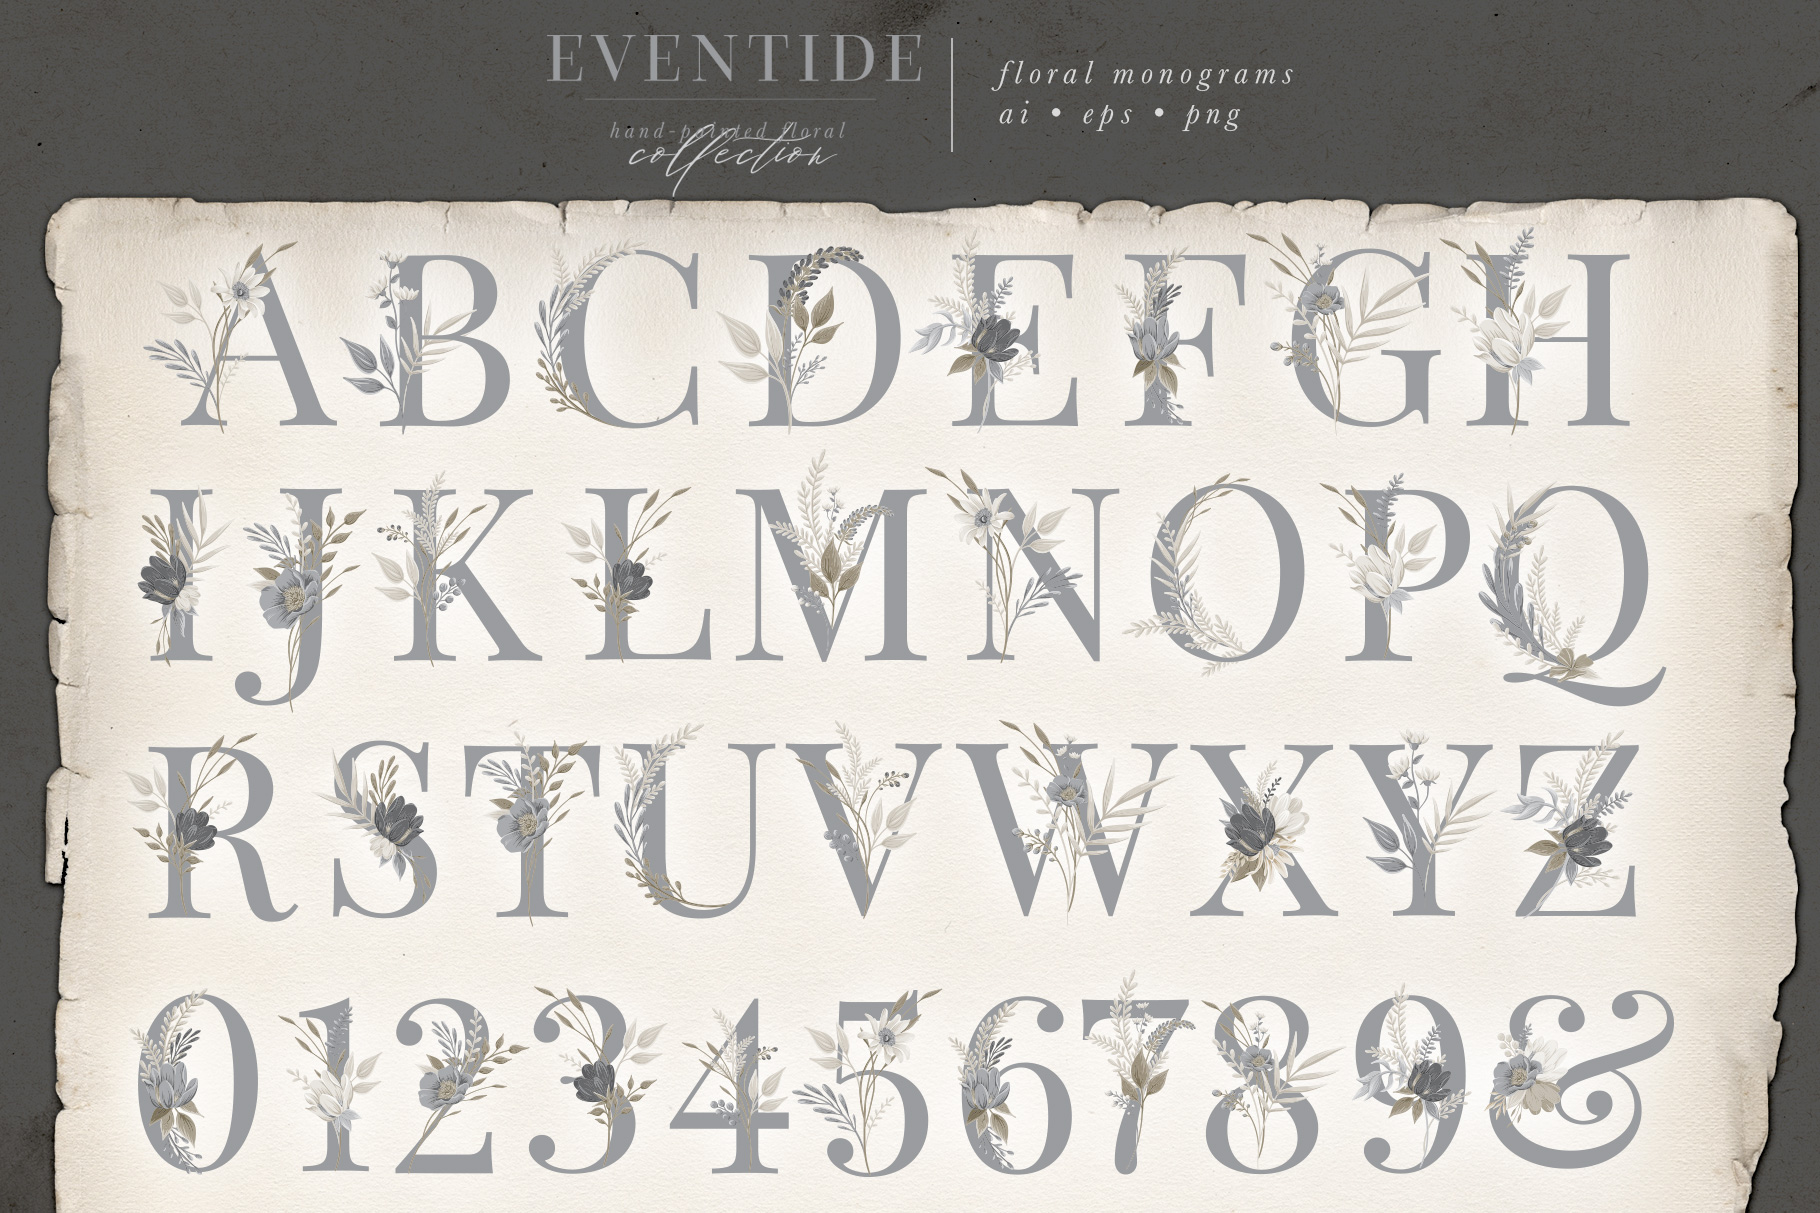 Eventide - Hand-painted Floral Collection